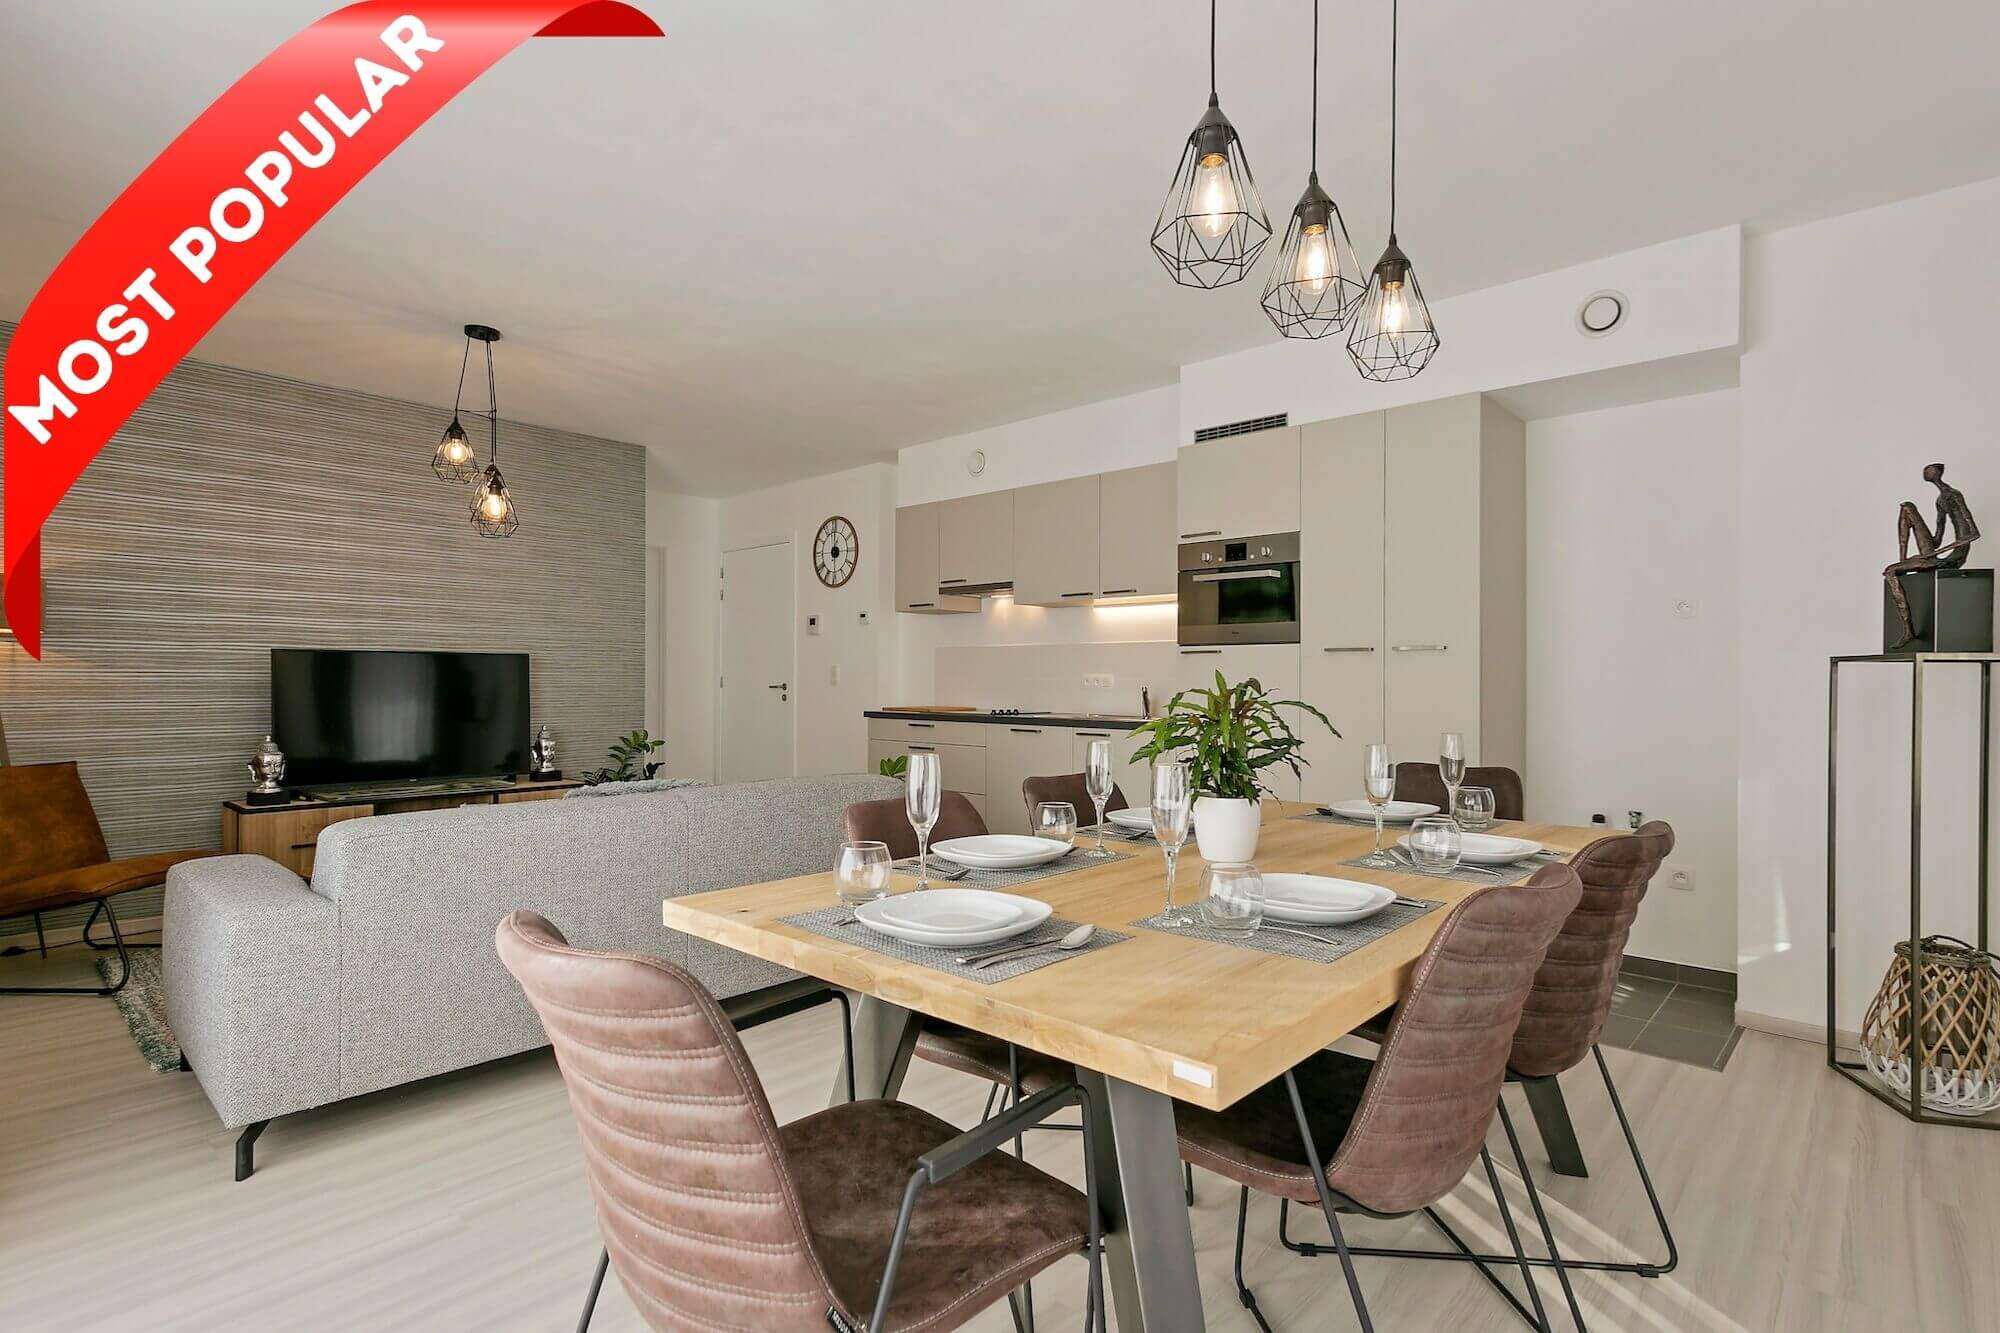 serviced apartment most popular option for expats